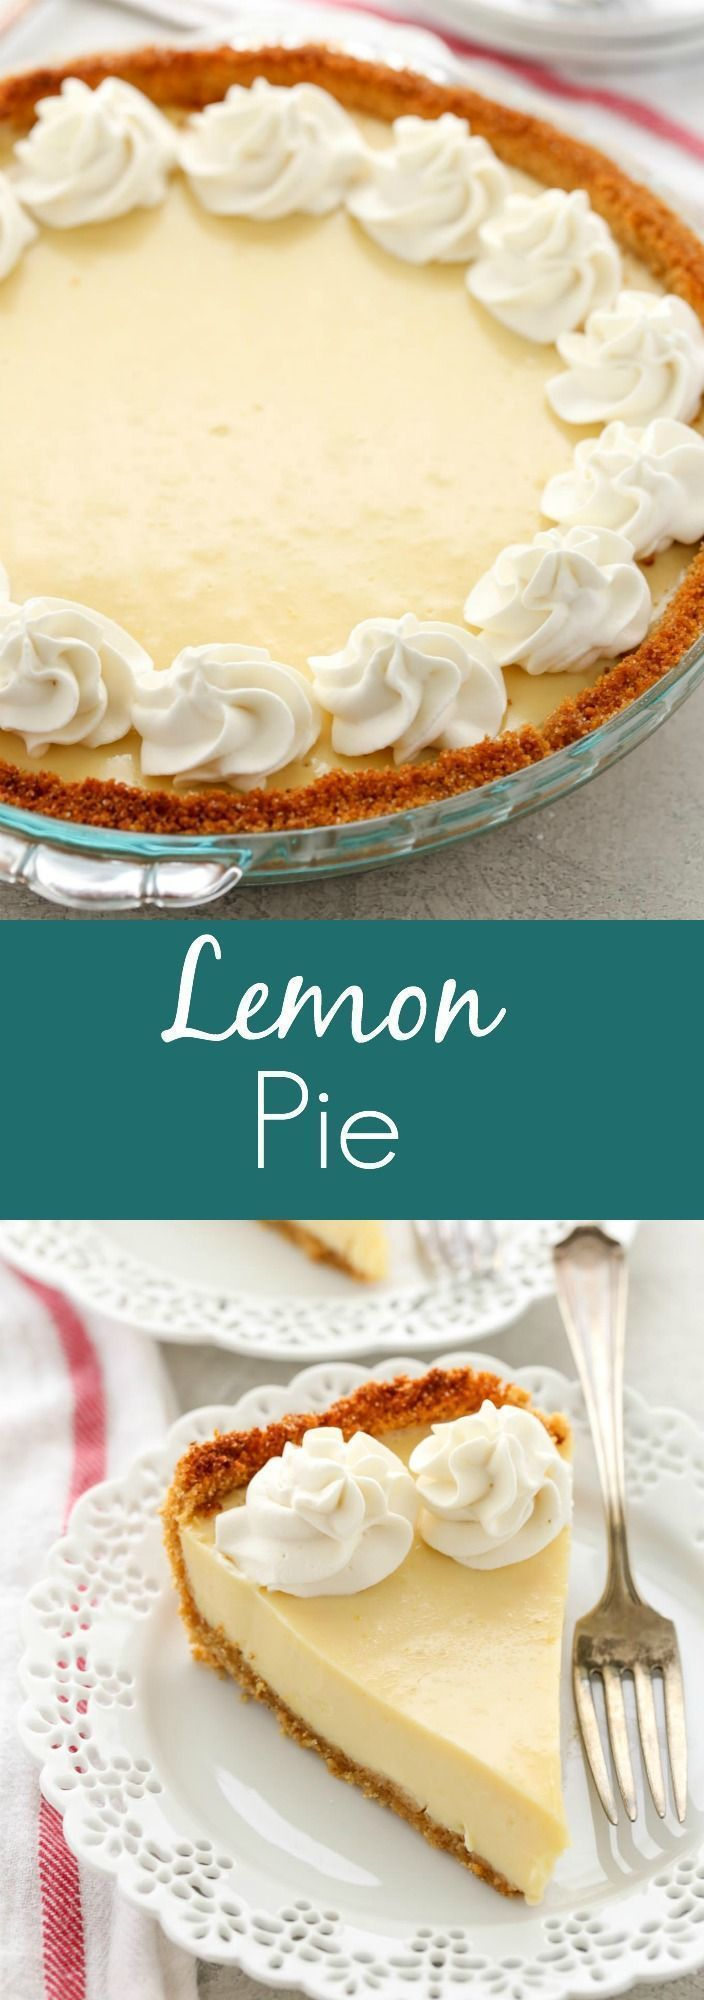 Here is an easy Lemon Pie for all of you lemon lovers out there! This Lemon Pie features an easy homemade graham cracker crust, a creamy lemon filling, and homemade whipped cream on top. This is the perfect, easy dessert for lemon lovers! #lemon #pie #recipes #homemade #easyrecipe #dessert #livewellbakeoften #lemon pies Lemon Pie